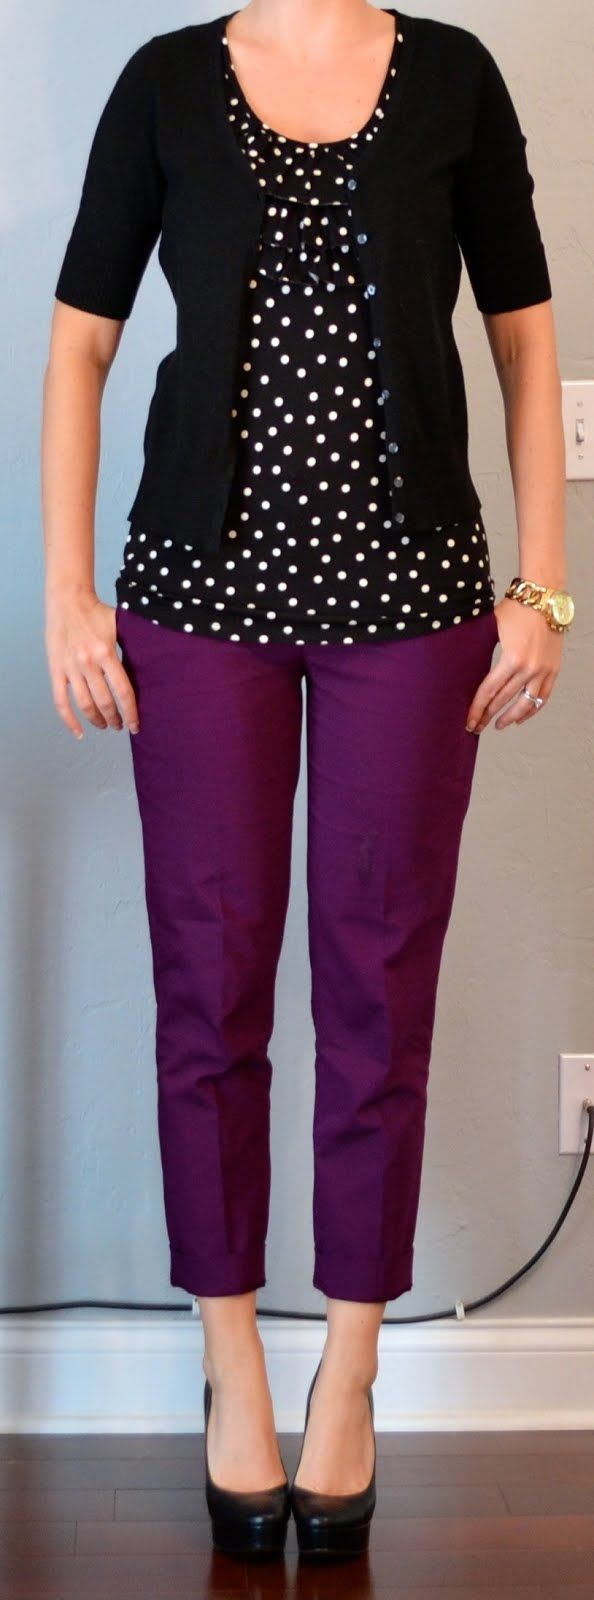 purple cropped pant, black & white polka dot blouse, black cardigan // totally just bought purple skinny jeans from Old Navy and need some more inspiration!